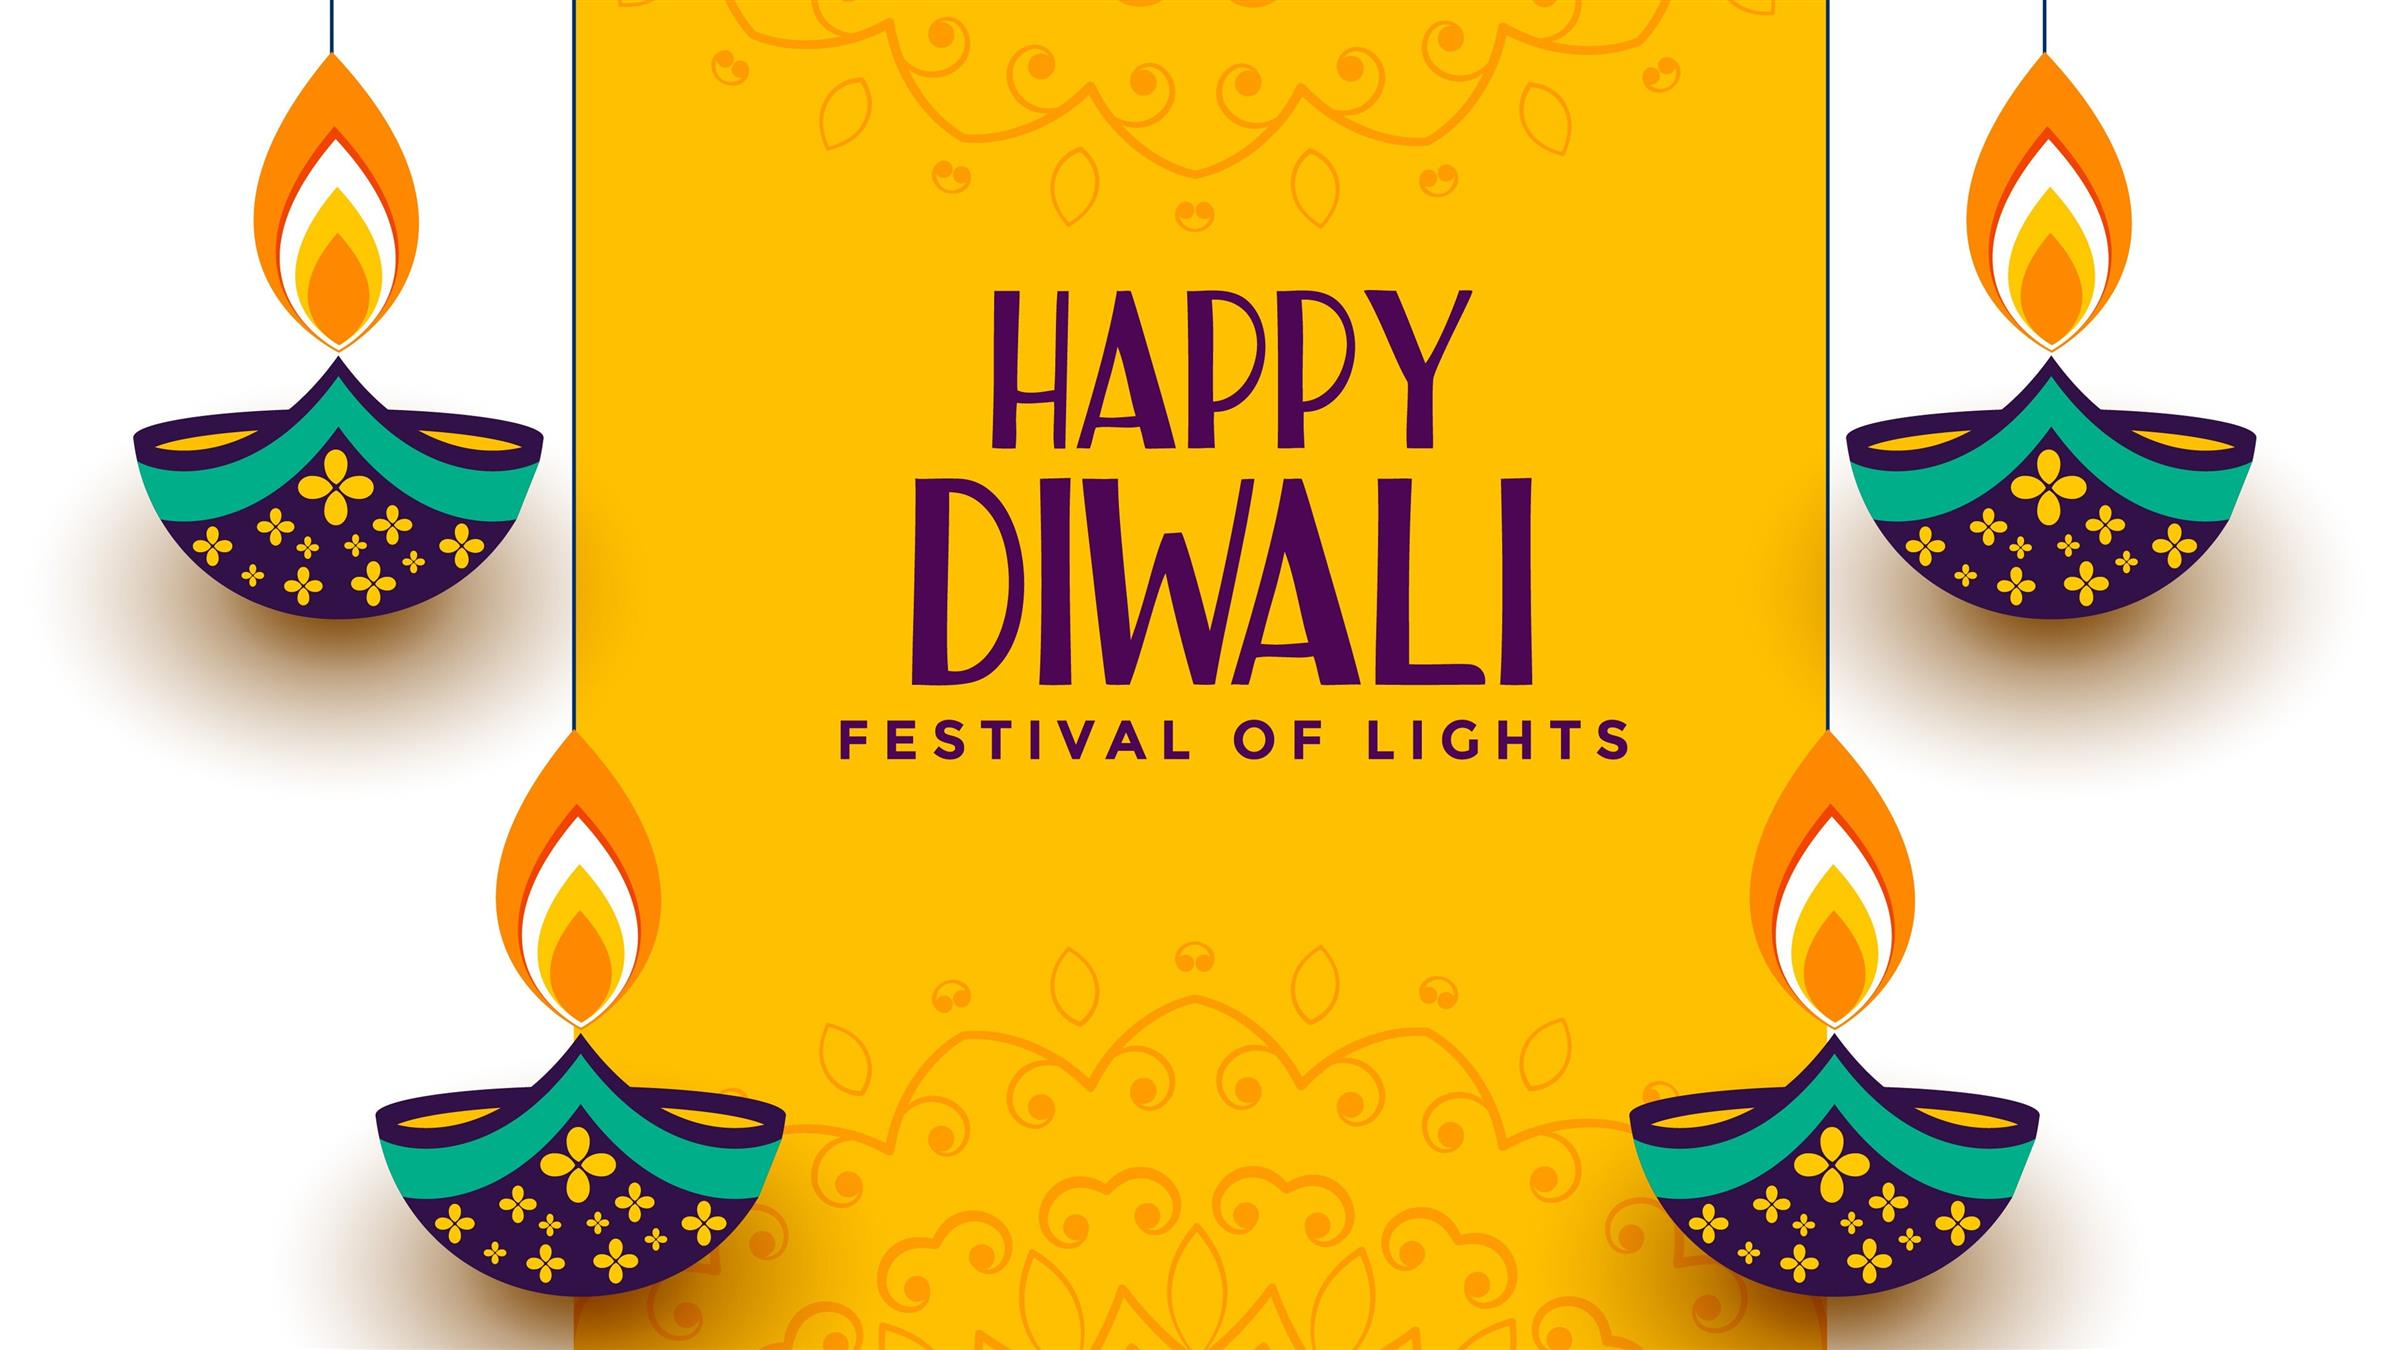 2400x1350 Festival of Lights Diwali 2019 Yellow Background 4K Wallpaper